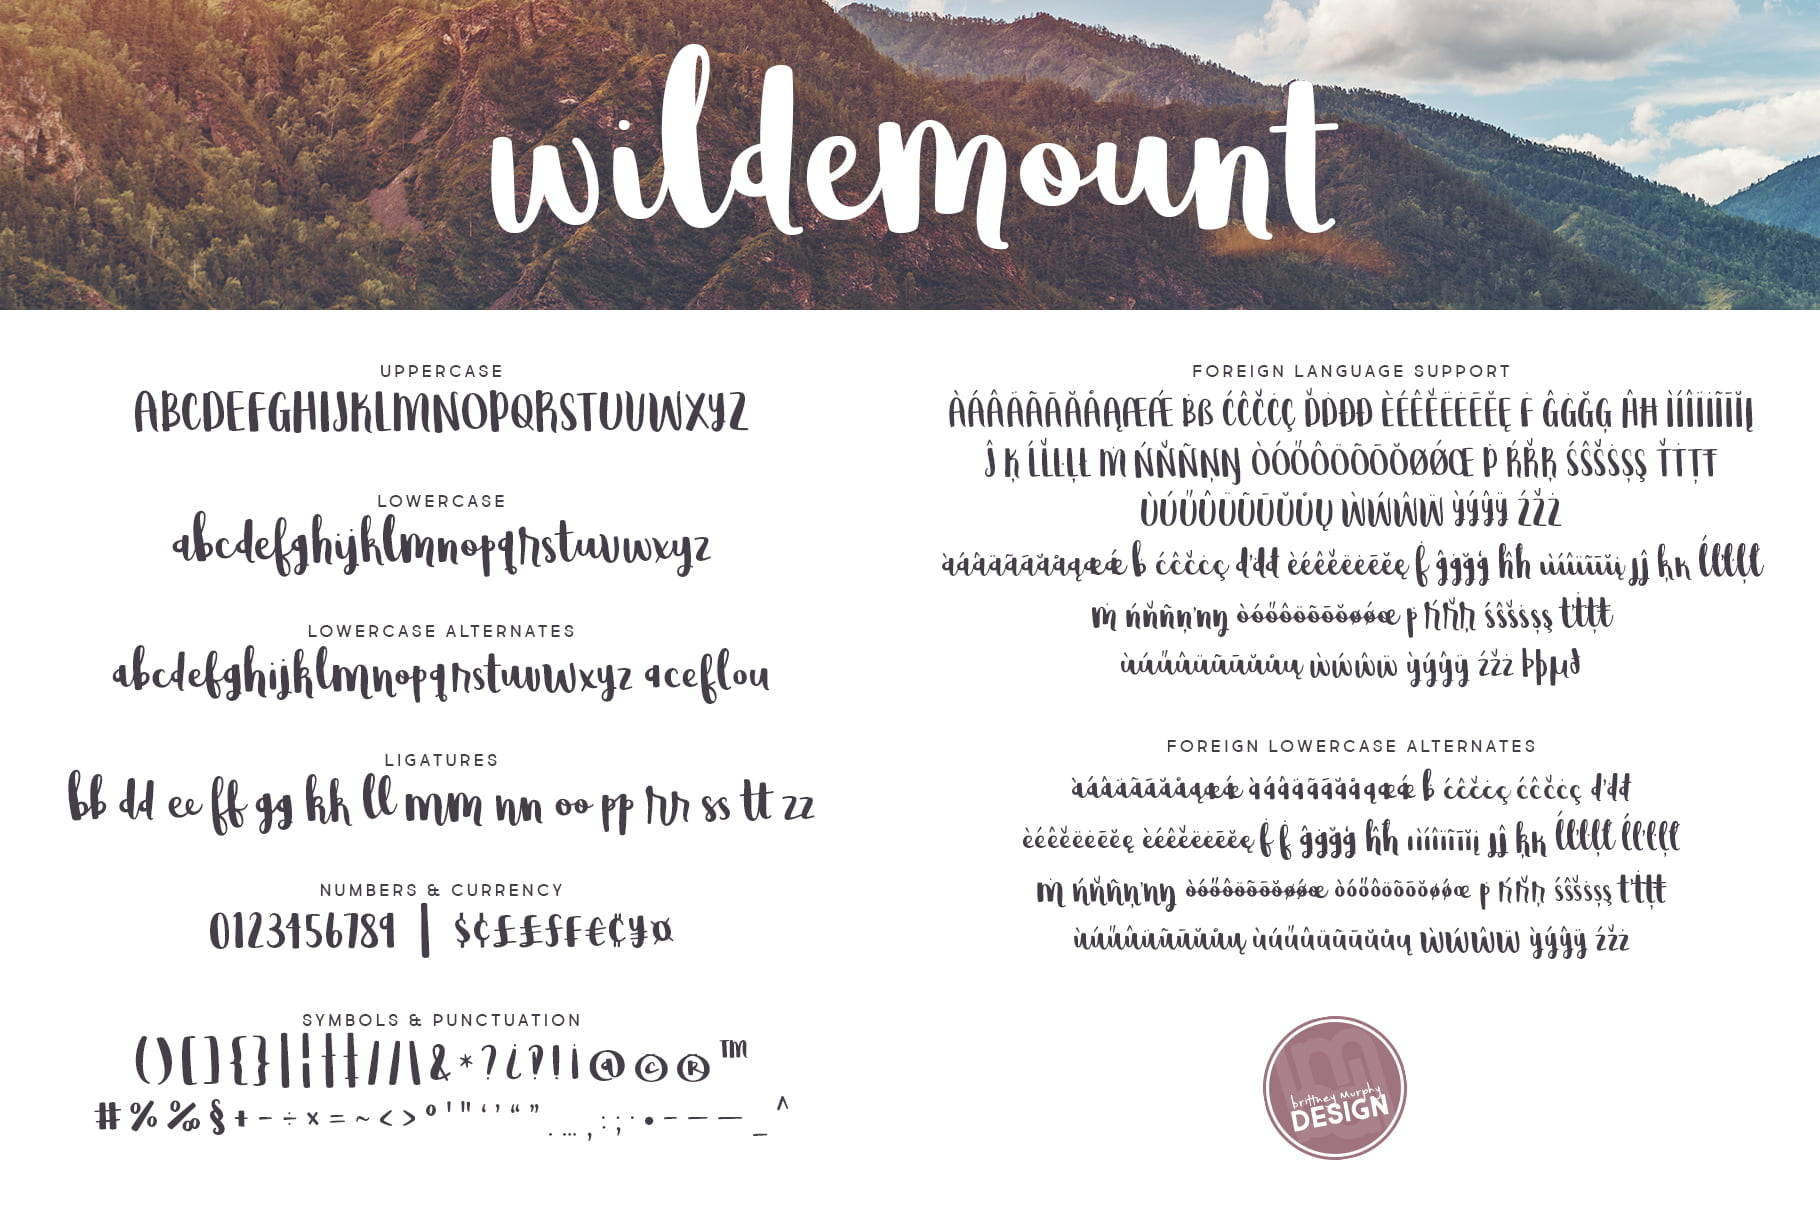 Wildemount All Letters